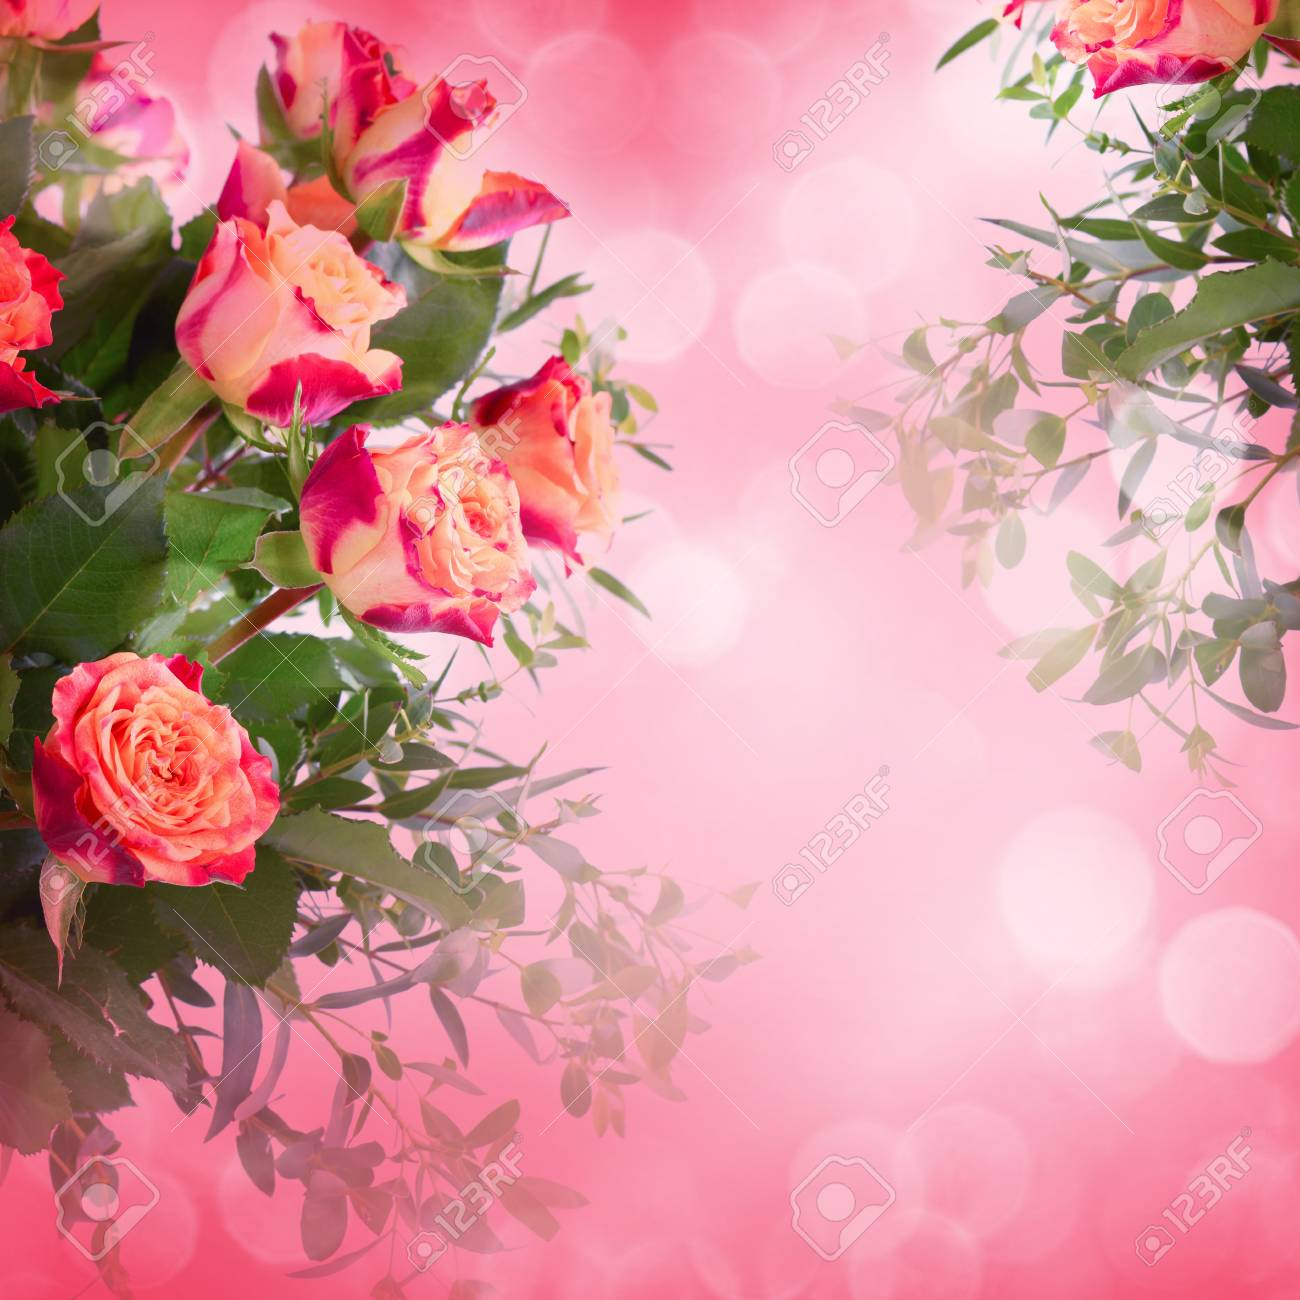 Bouquet of roses on romantic background - 43347792